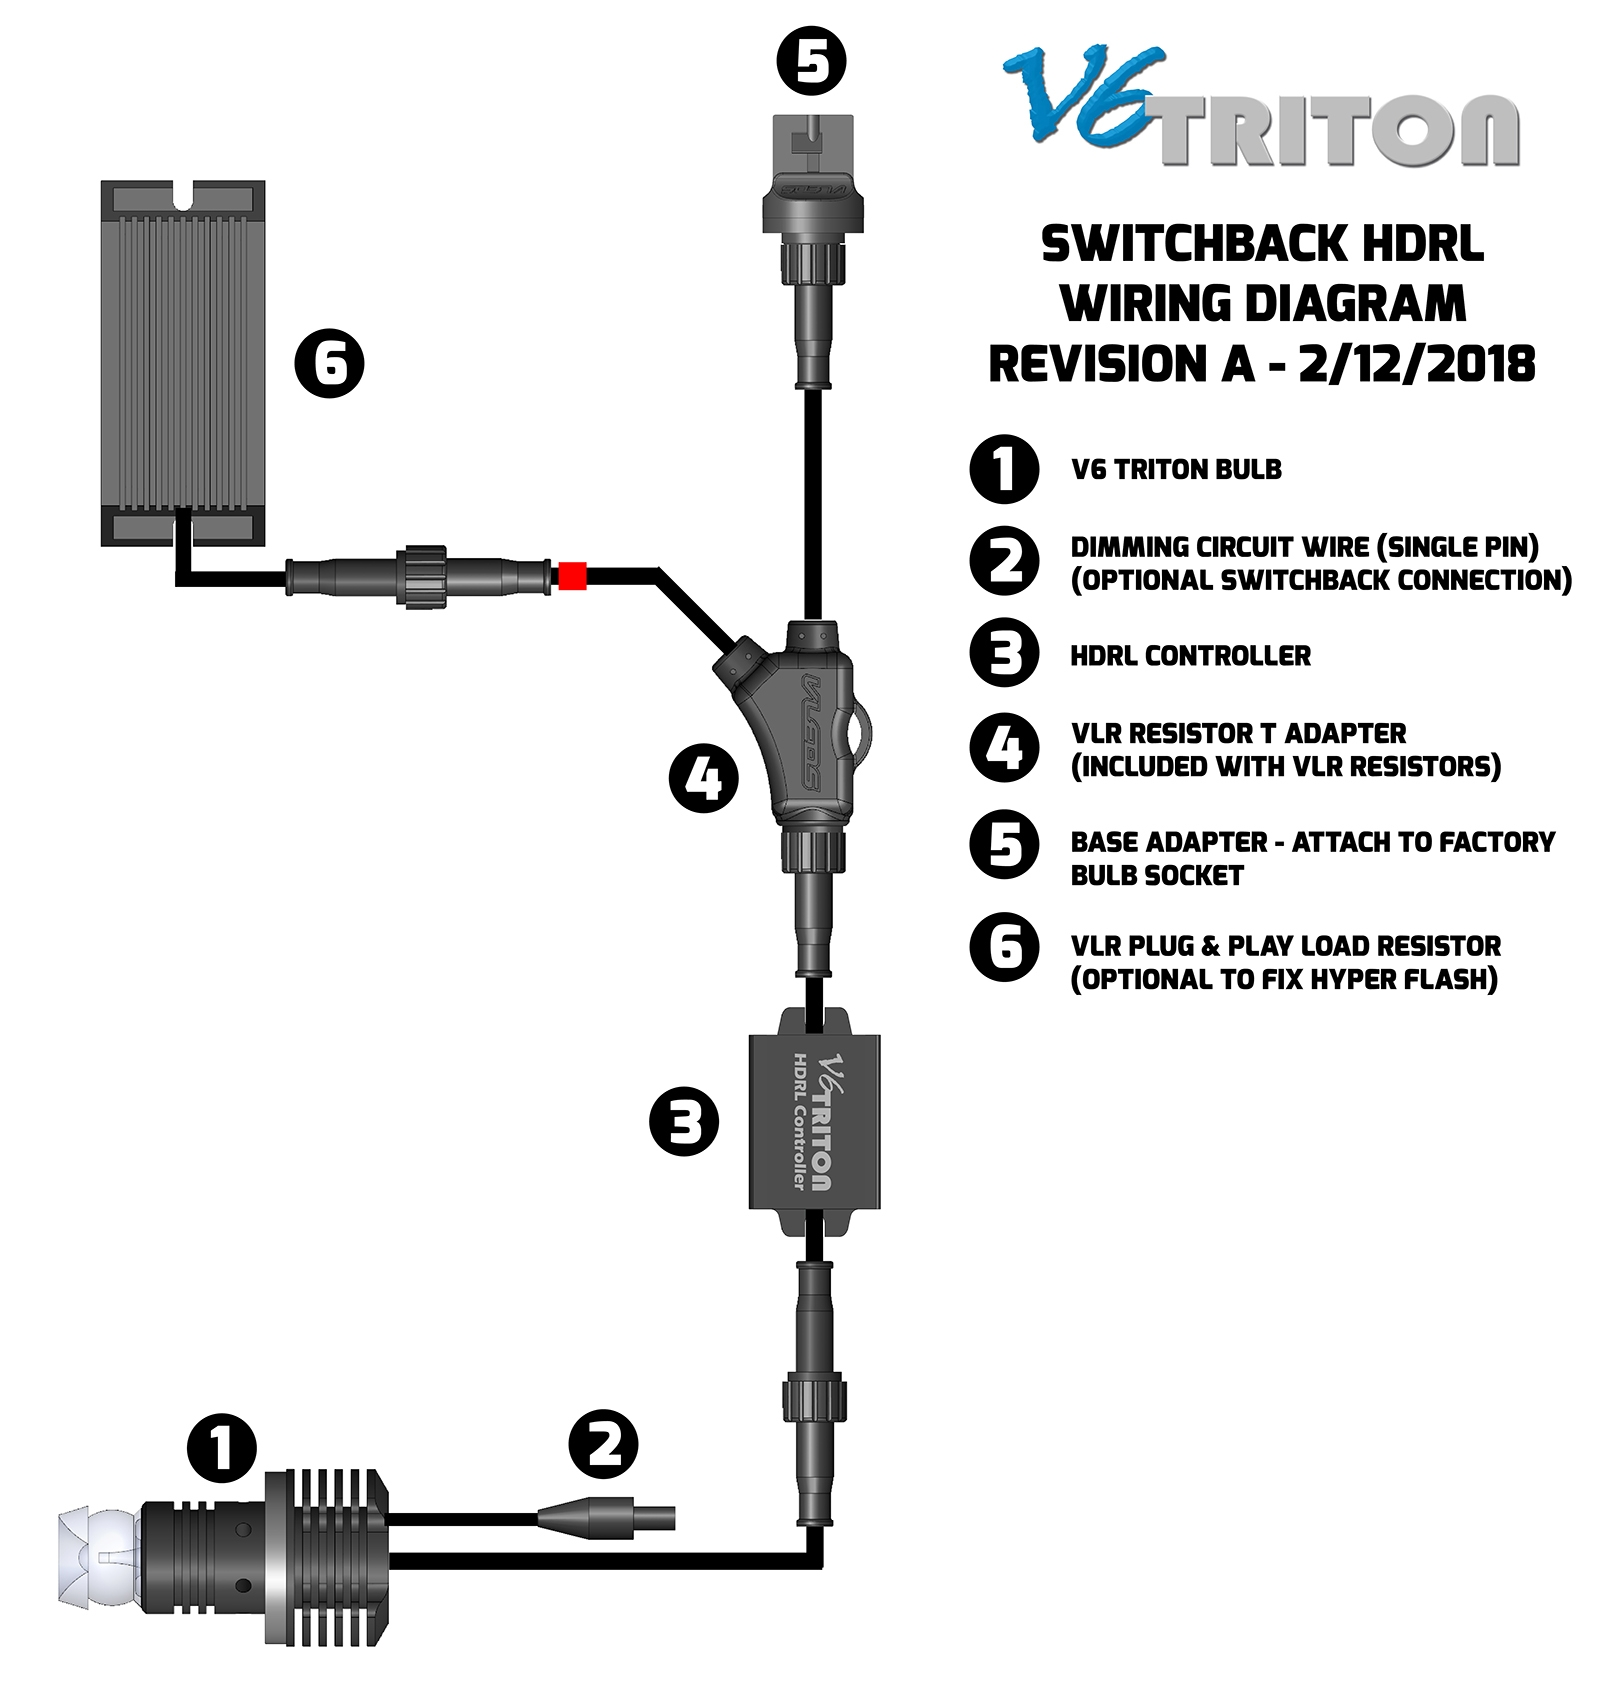 V6 Triton Switchback Installation Instructions